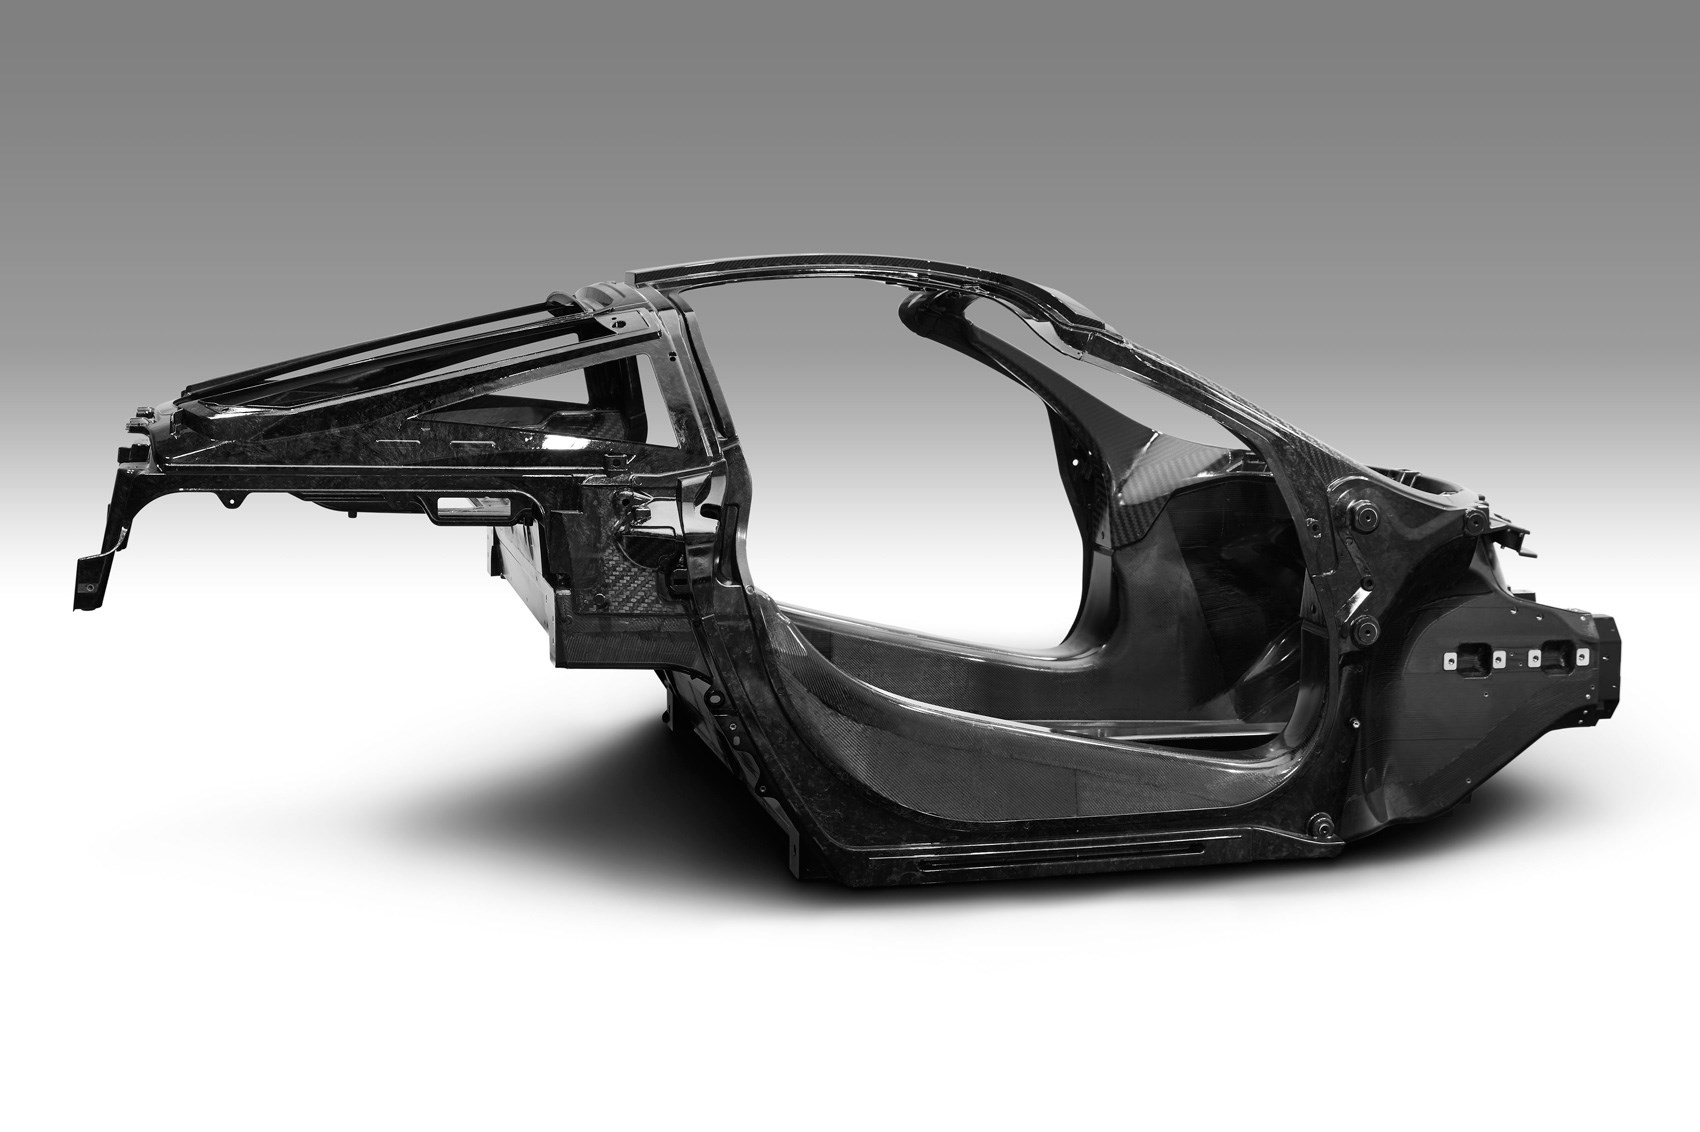 McLaren P14 Monocage II revealed ahead of Geneva debut